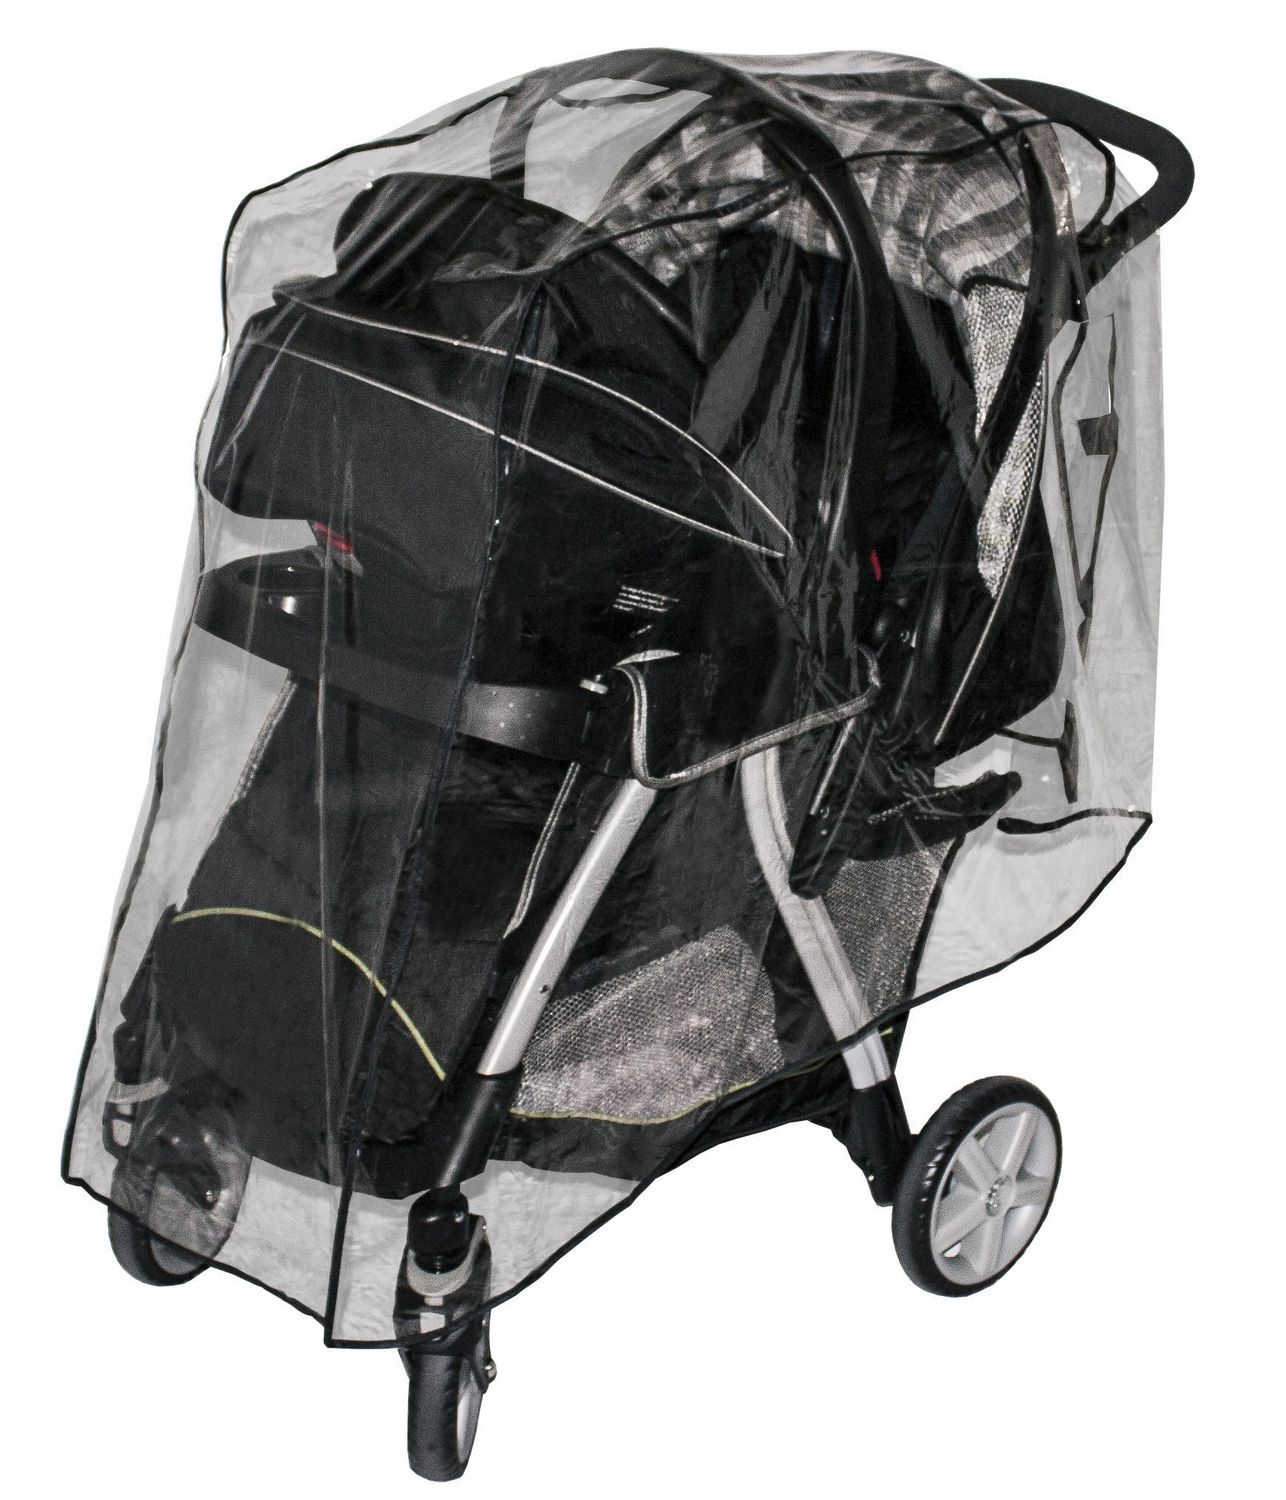 for strollers